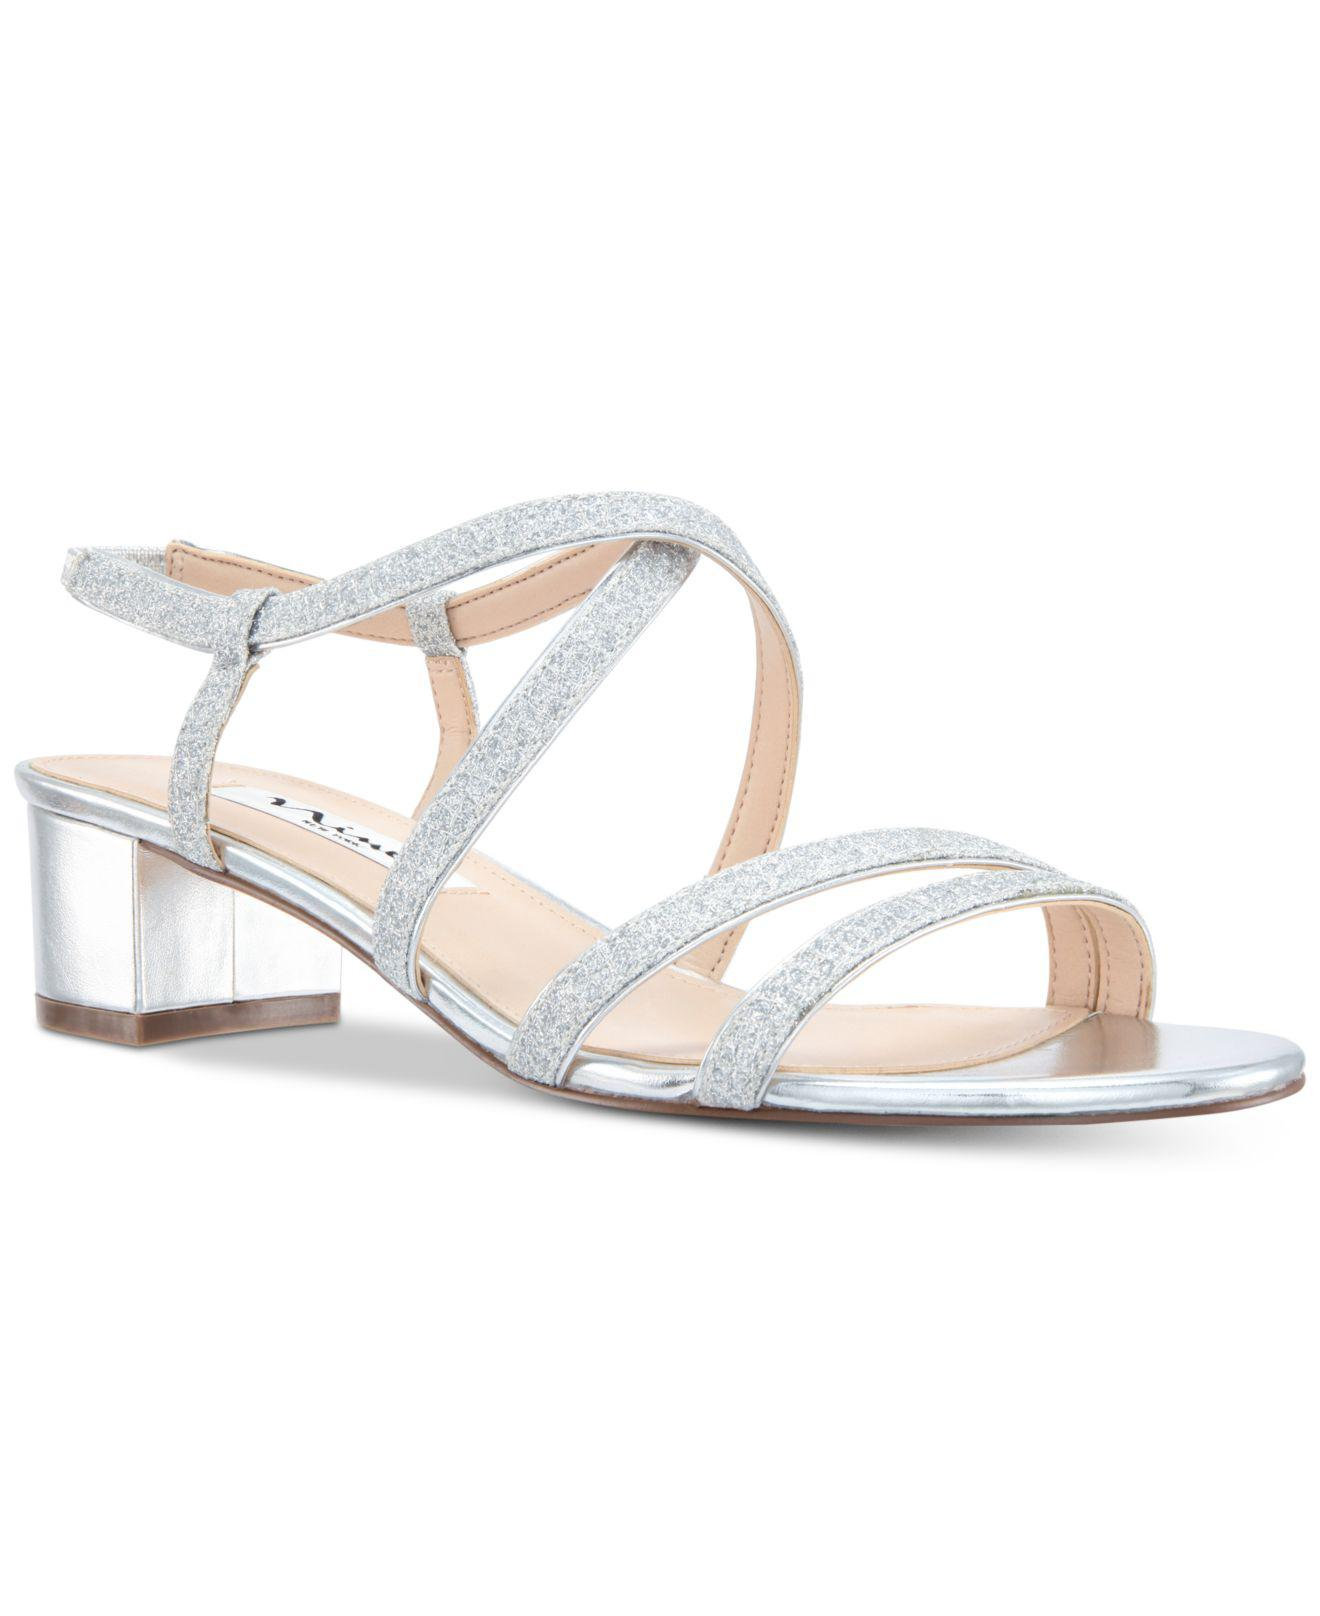 NINA Gaelen Evening Sandals Women's Shoes rCnfhvo3X